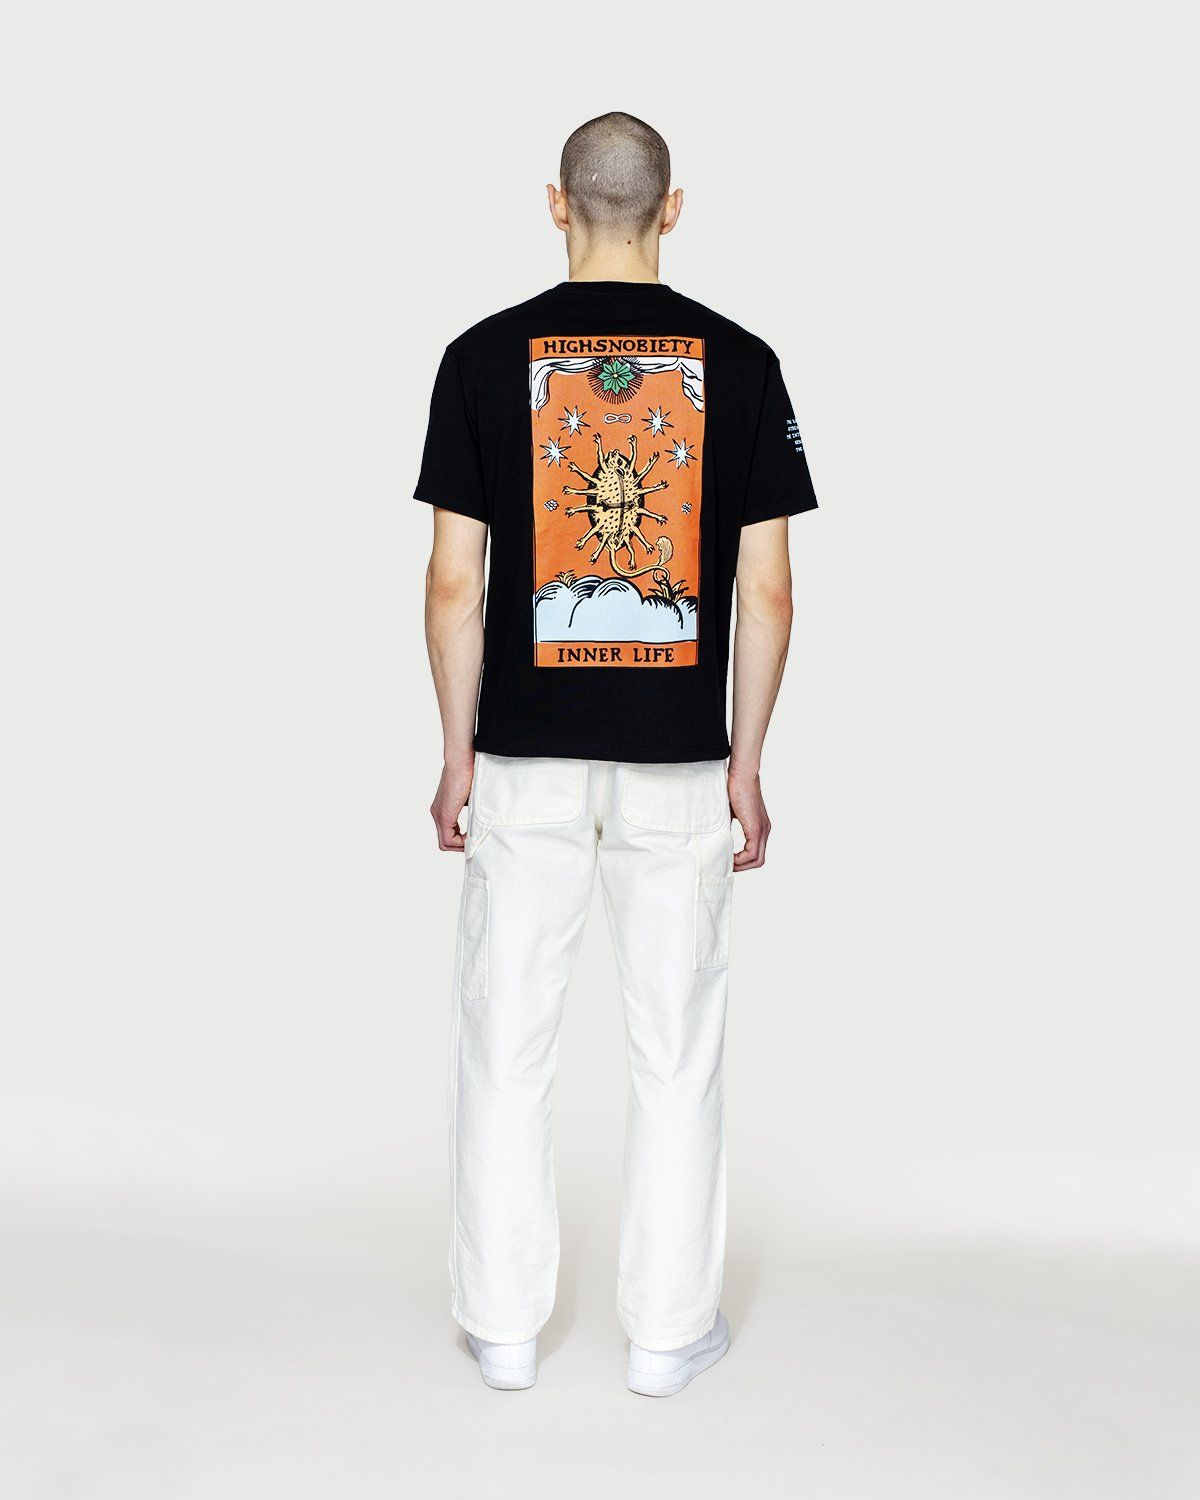 Inner Life by Highsnobiety - T-Shirt Black - Image 7